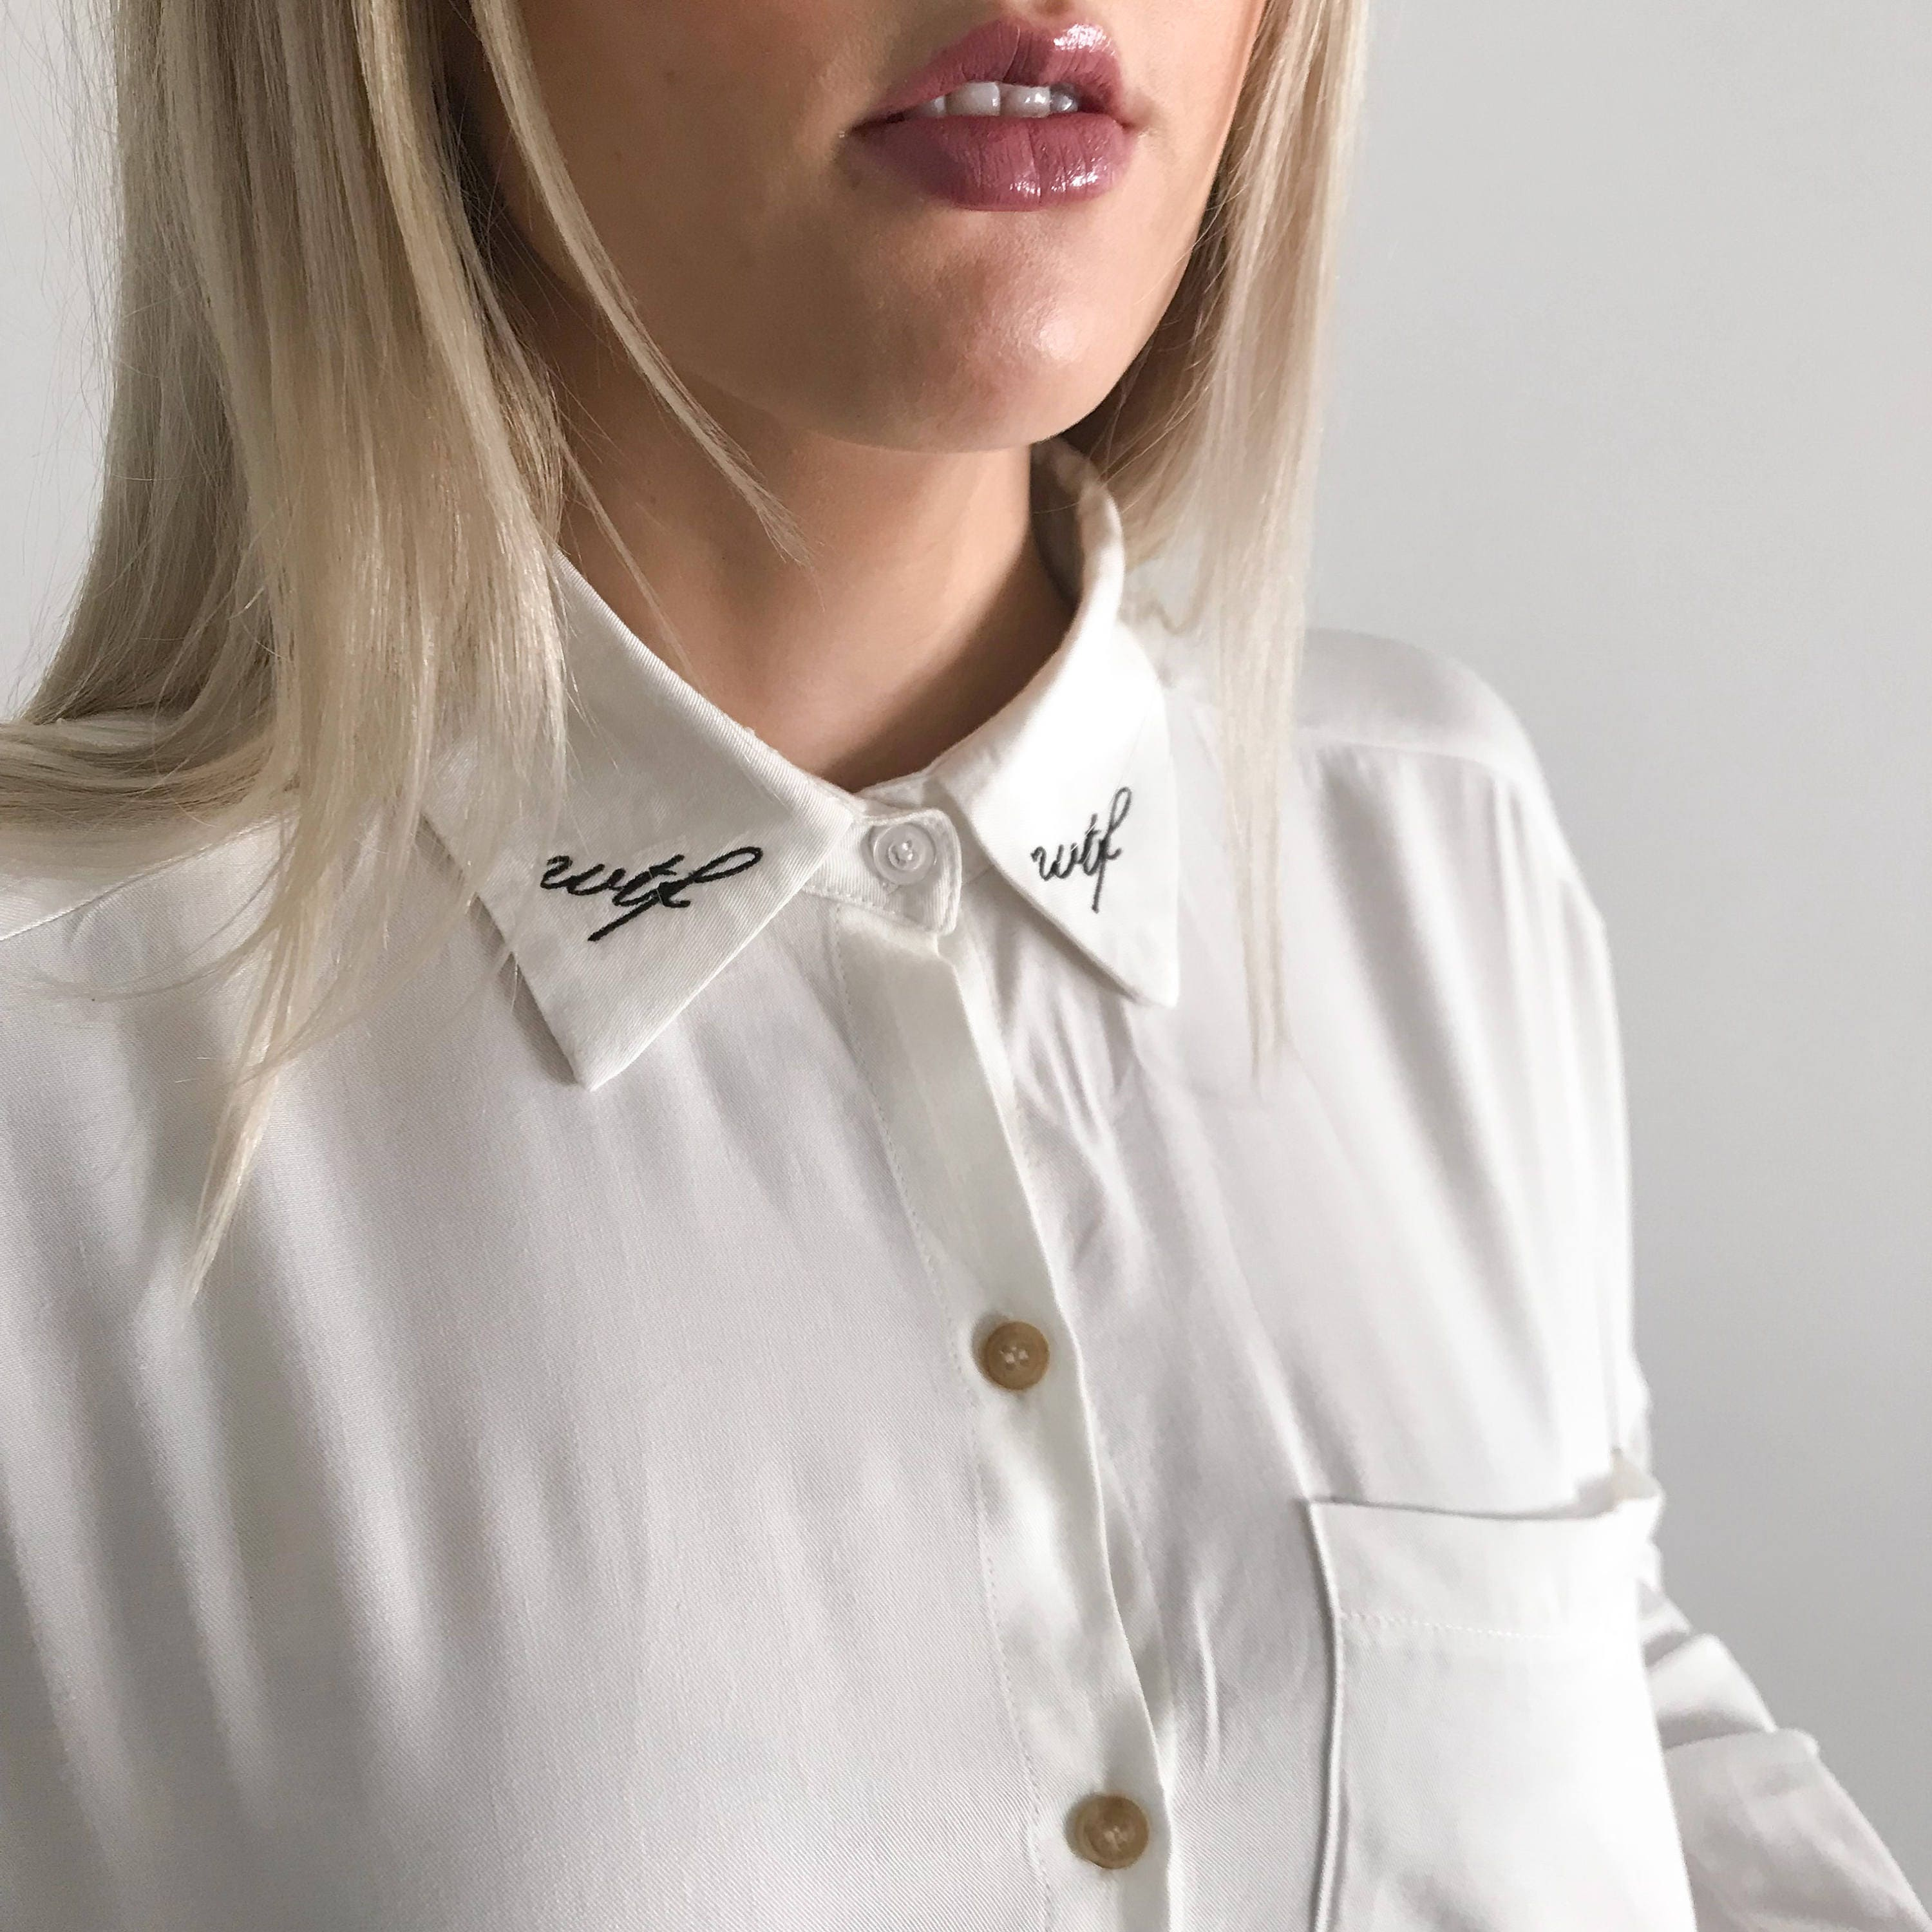 Wtf Embroidered Collar Shirt Embroidered Shirt Oversized Etsy